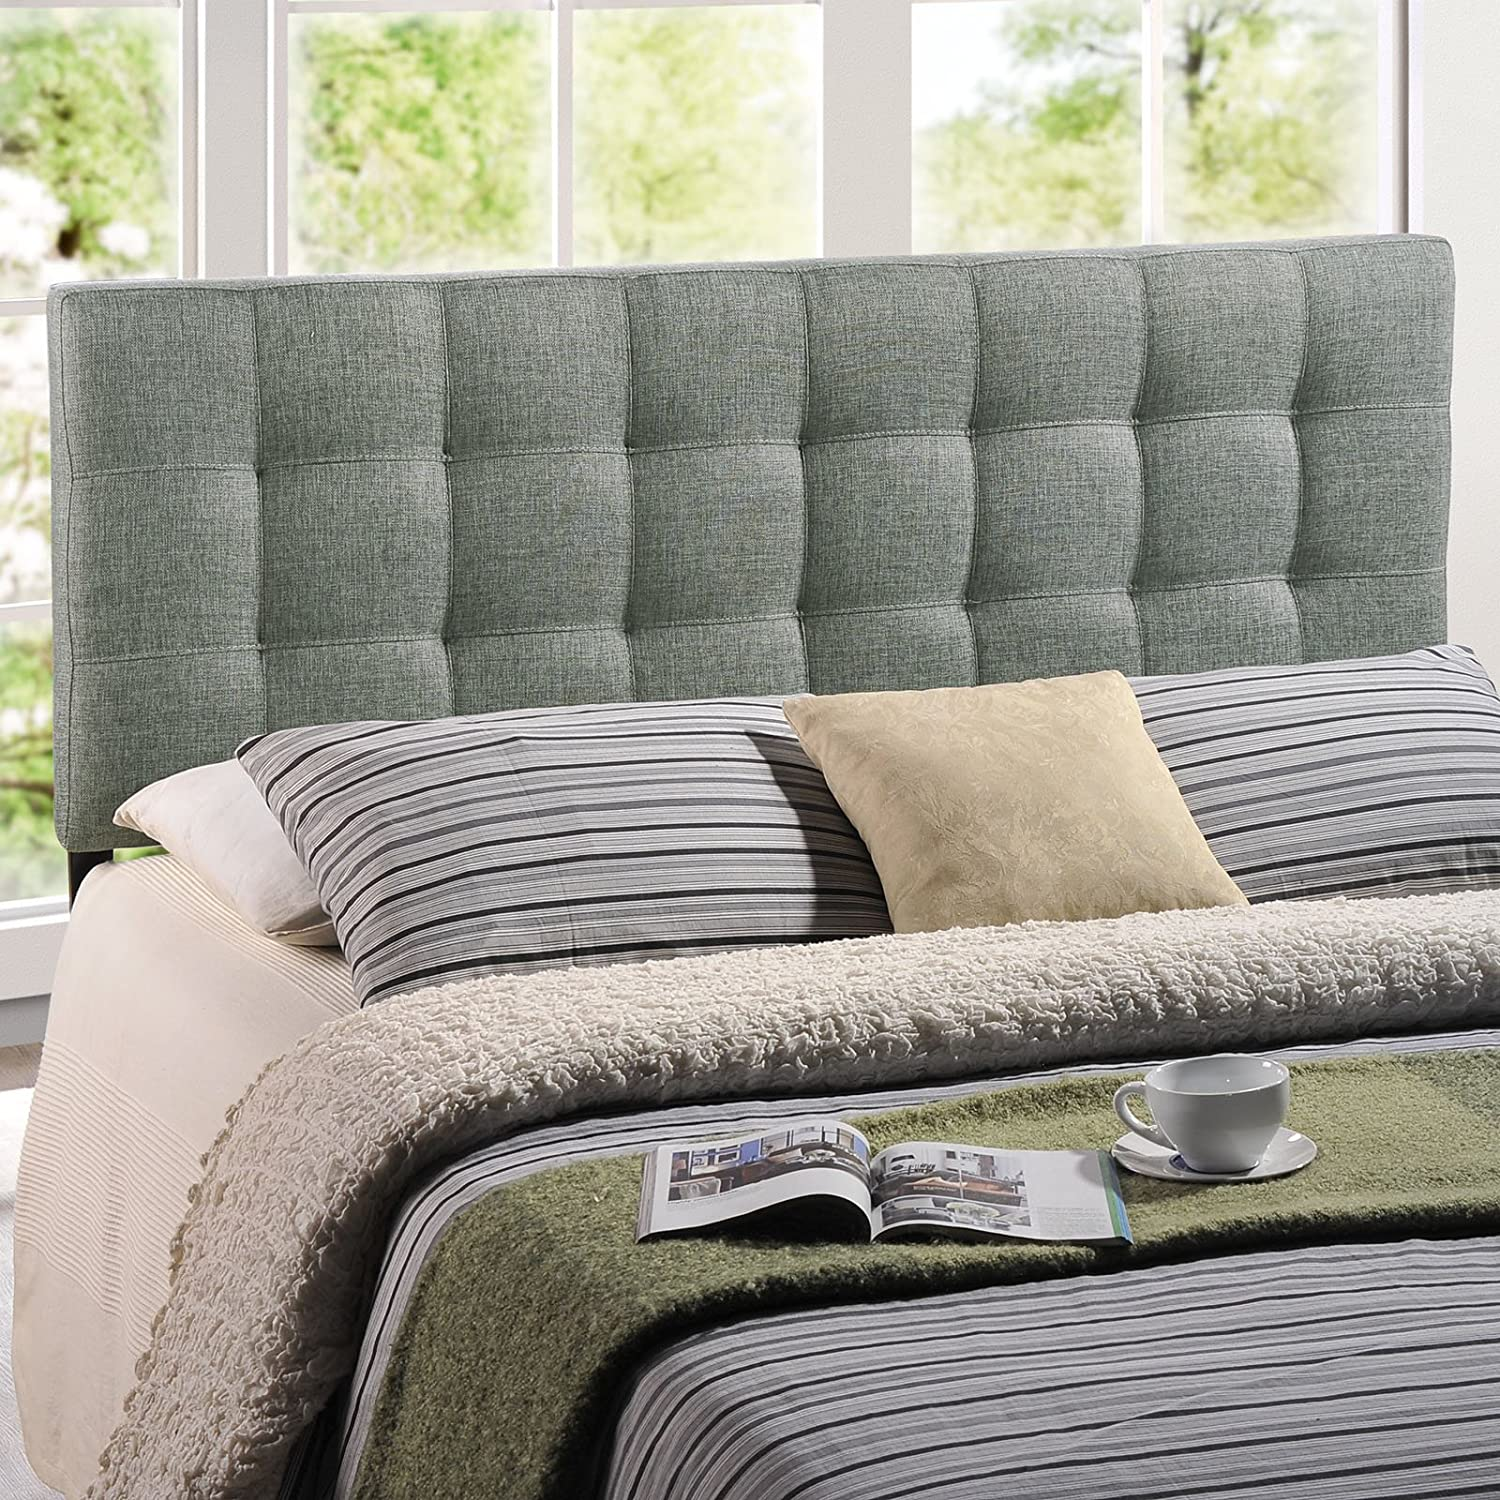 Amazon.com - Modway Lily Upholstered Tufted Fabric Headboard Queen Size In  Gray -